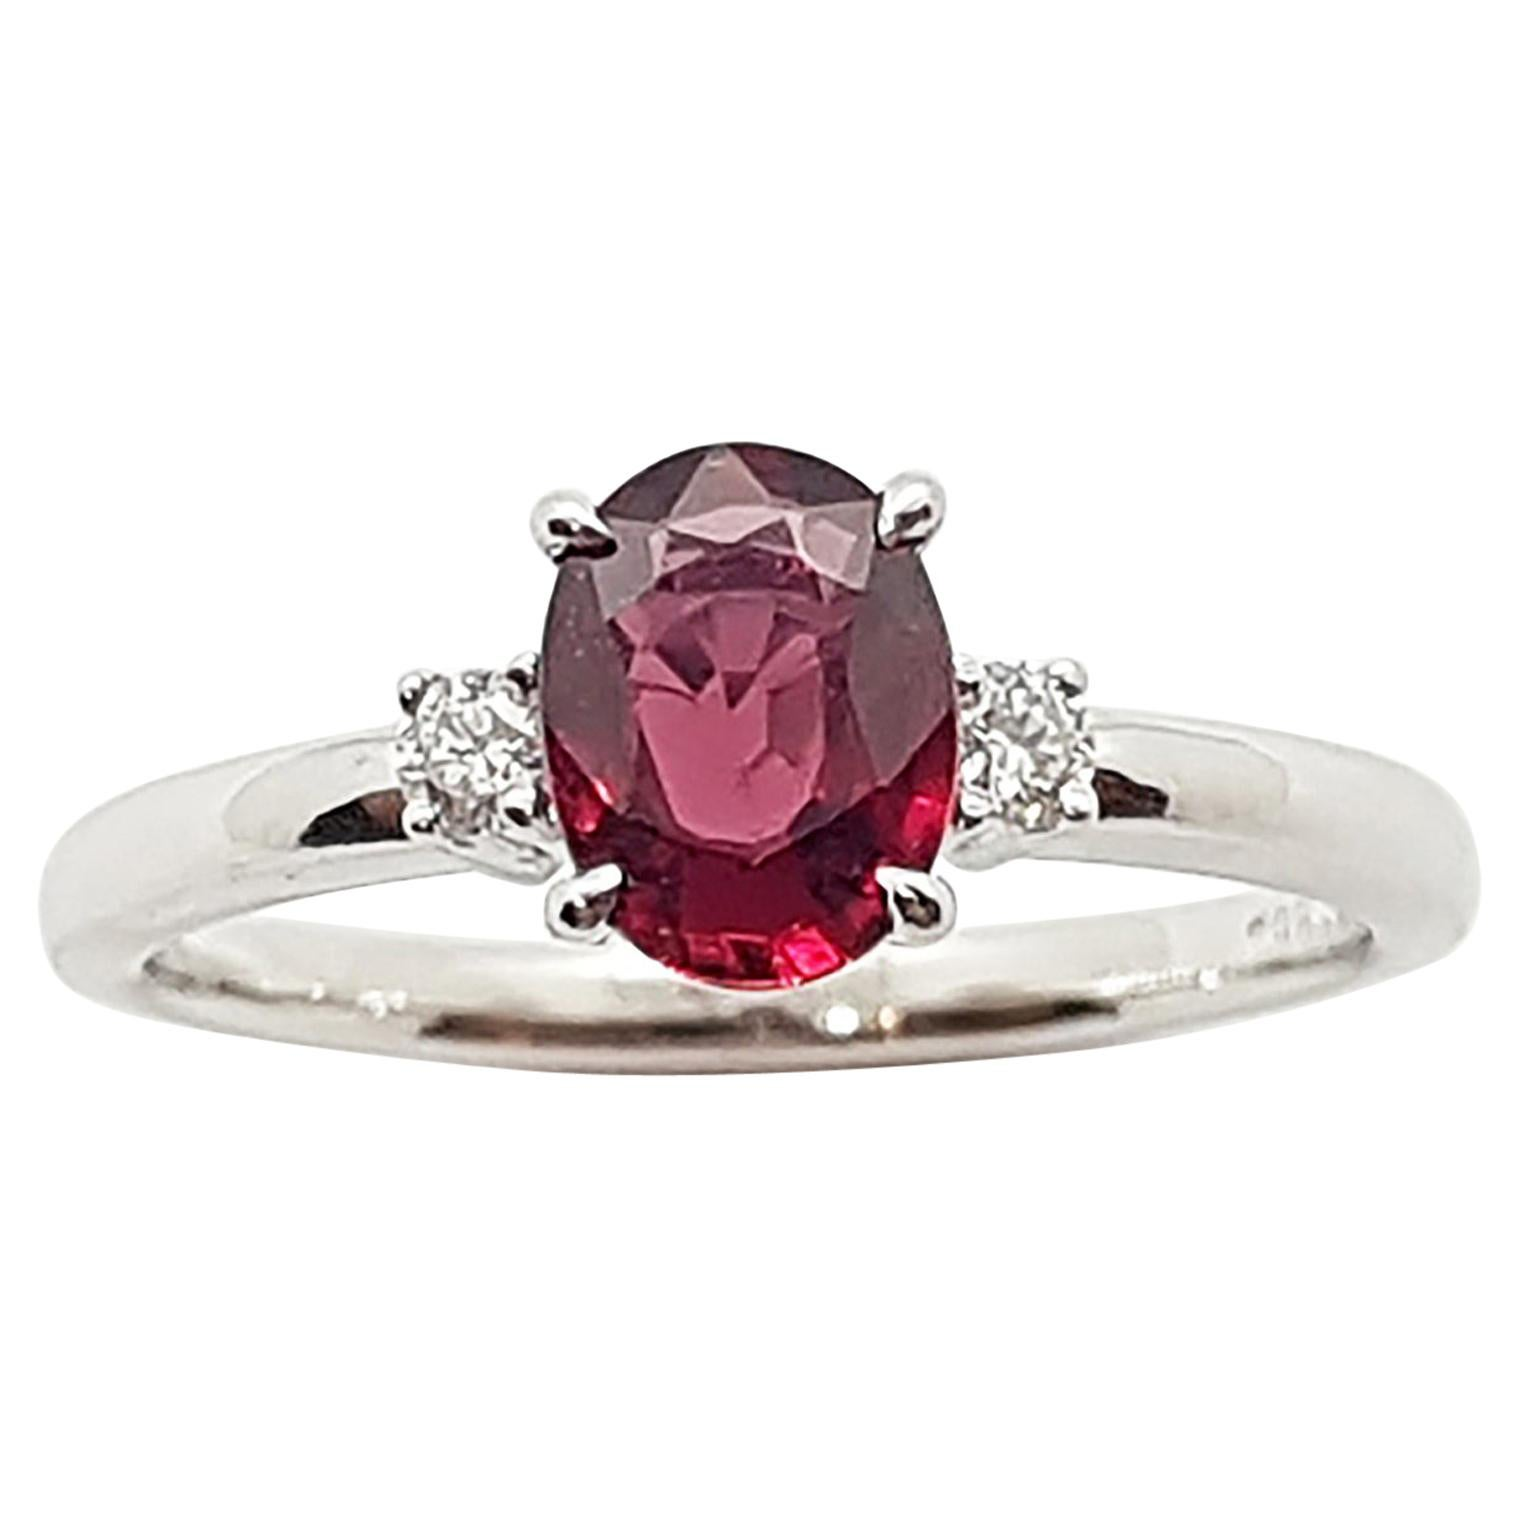 Certified Unheated Ruby with Diamond Ring Set in Platinum 950 Settings